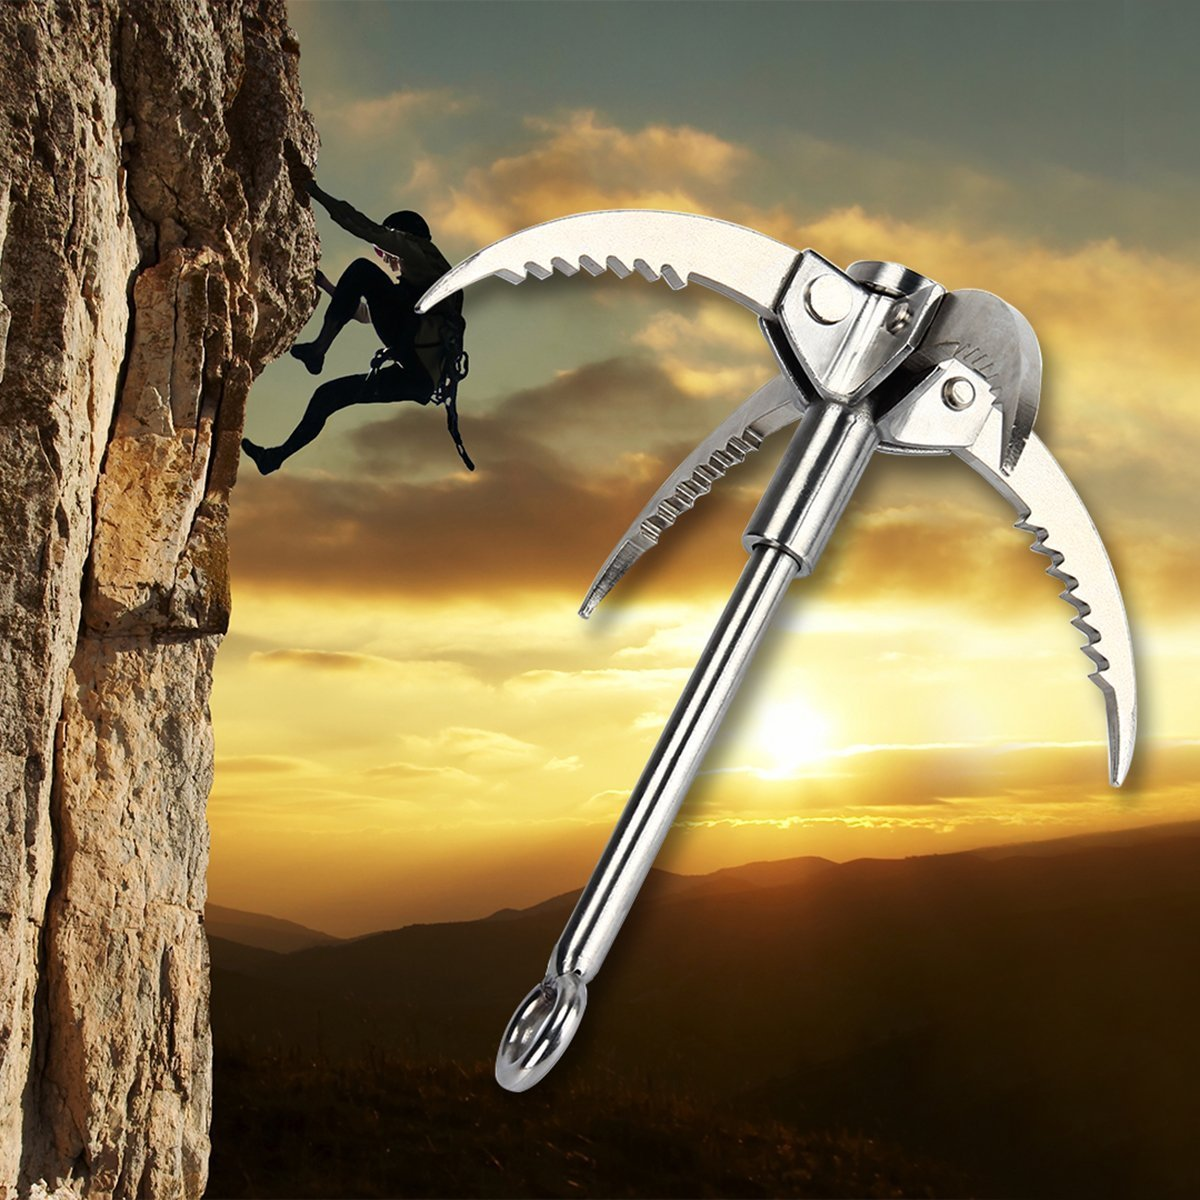 targetevoステンレススチールGrappling Hook With 4 folding Claws forキャンプハイキングサバイバルツリーRock Mountain Climbing  1個 B079FQ4WQD